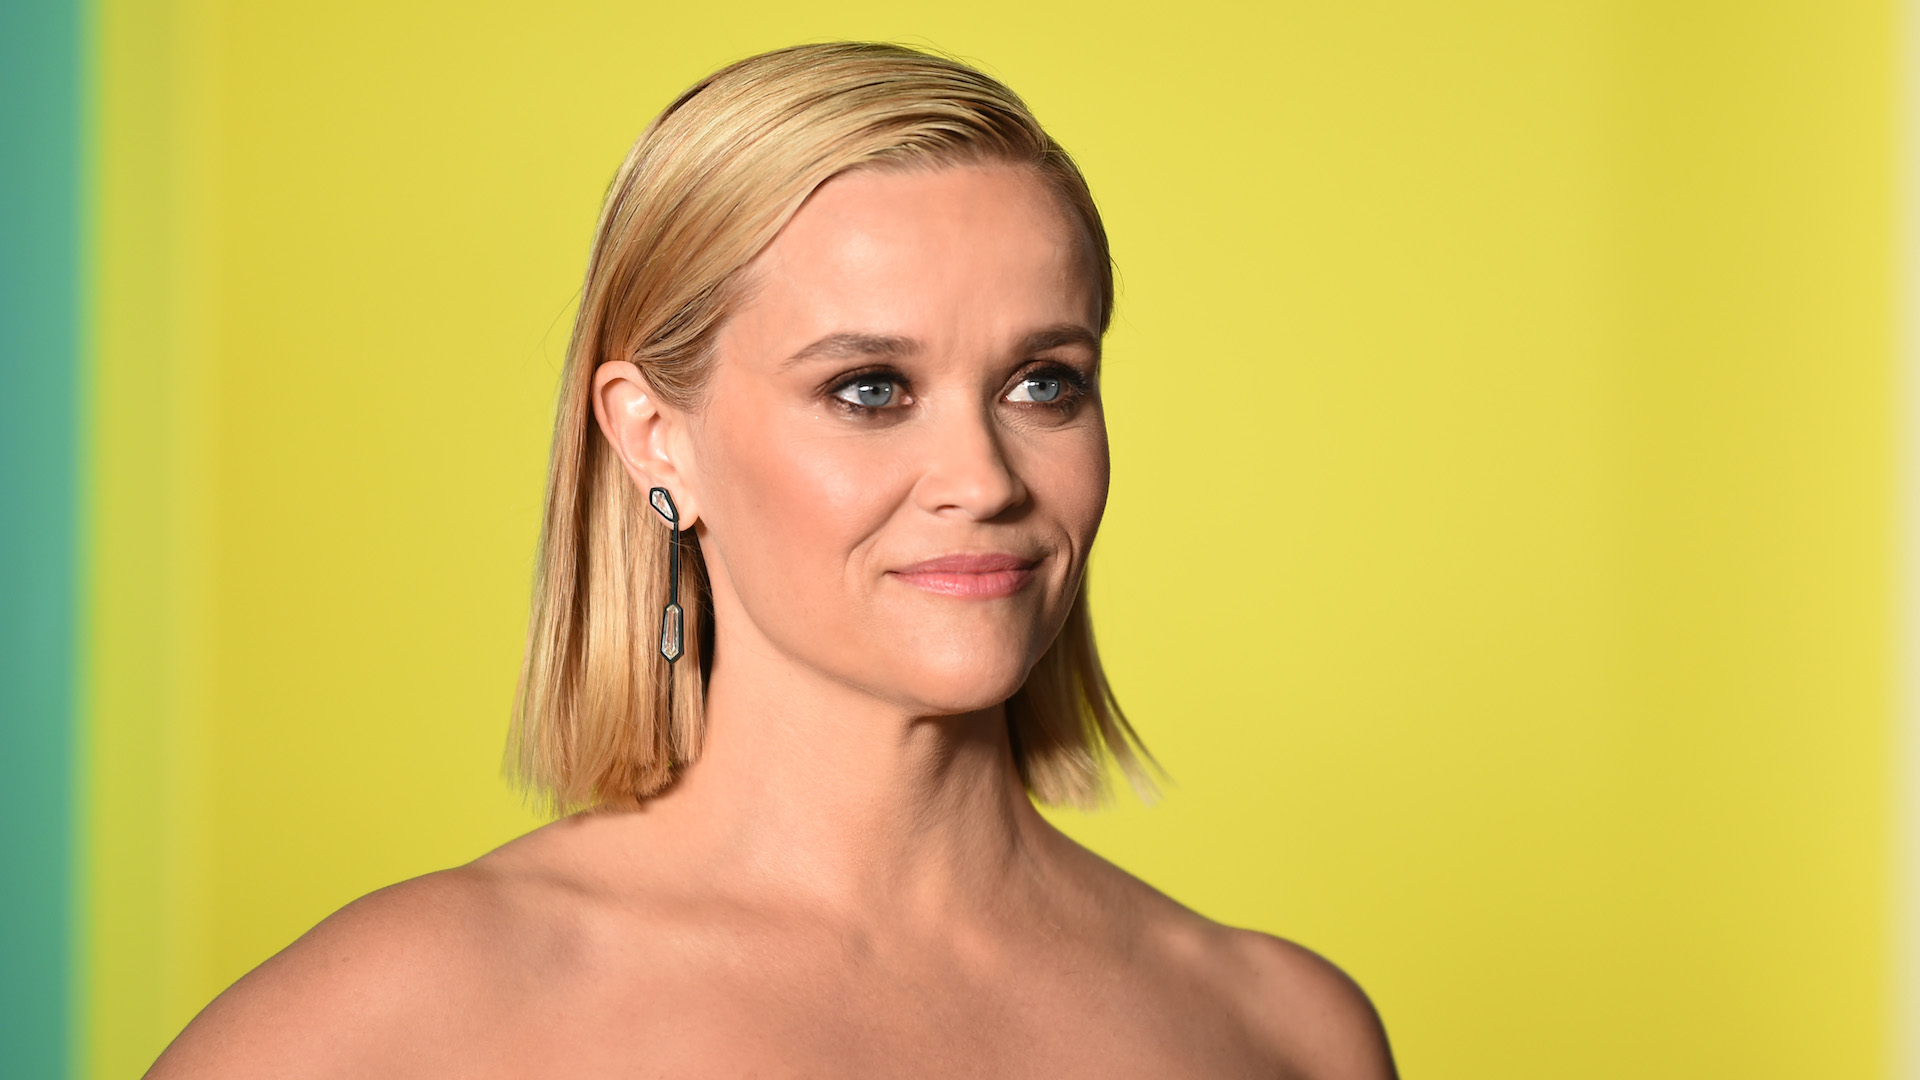 Reese Witherspoon's Adorable Fall Outfit Is So Easy to Recreate